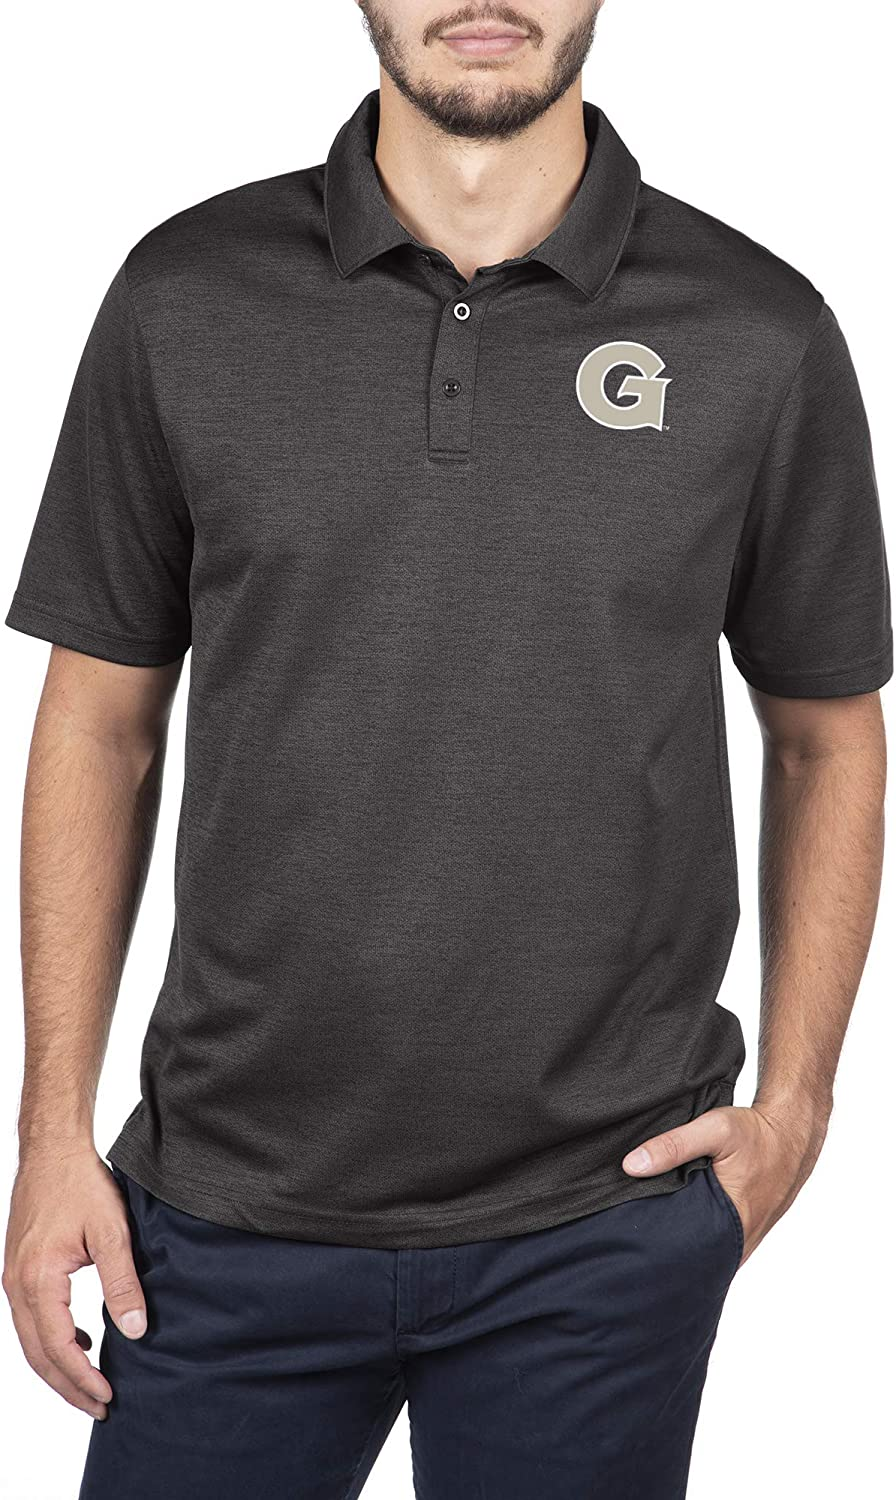 Top of the World NCAA Mens Dark Heather Carbon Polo